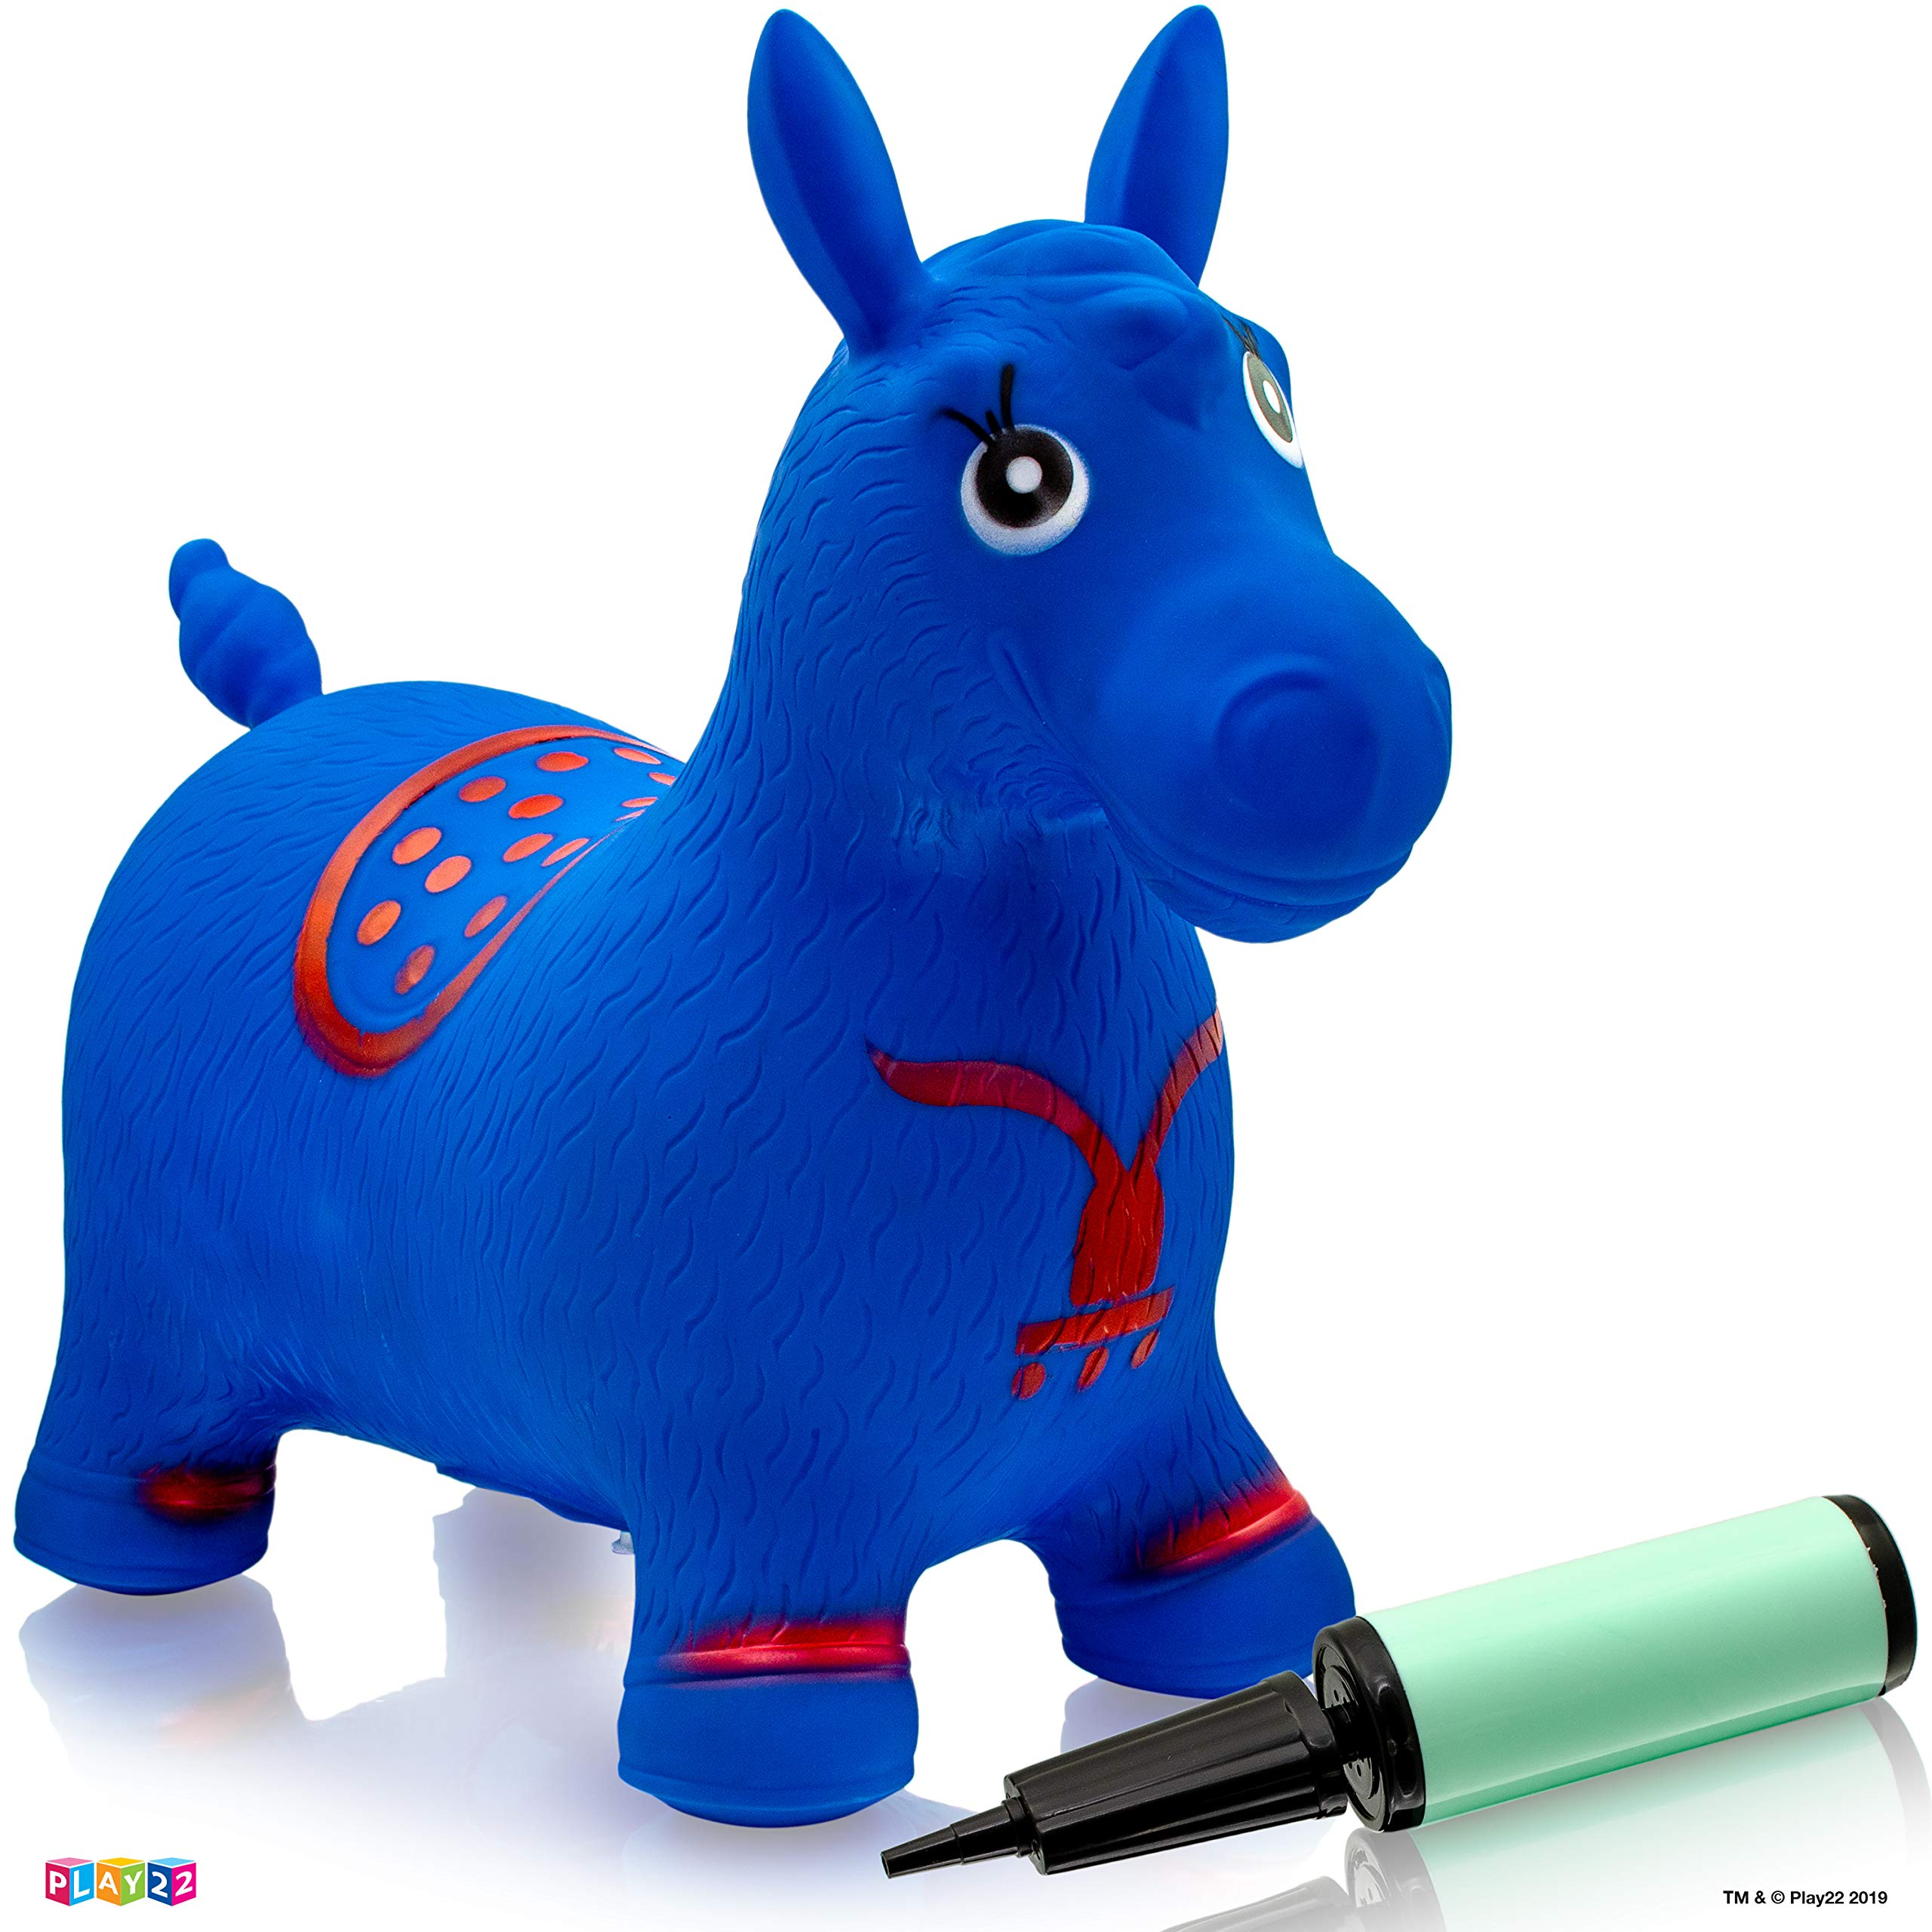 Play22 Horse Hopper Blue - Inflatable Horse Bouncer Free Pump Included - Bouncy Horse Toys for Kids & Toddler Riding Horse Toy Great for Indoor and Outdoor Toys Play - Best Gift for Boys and Girls